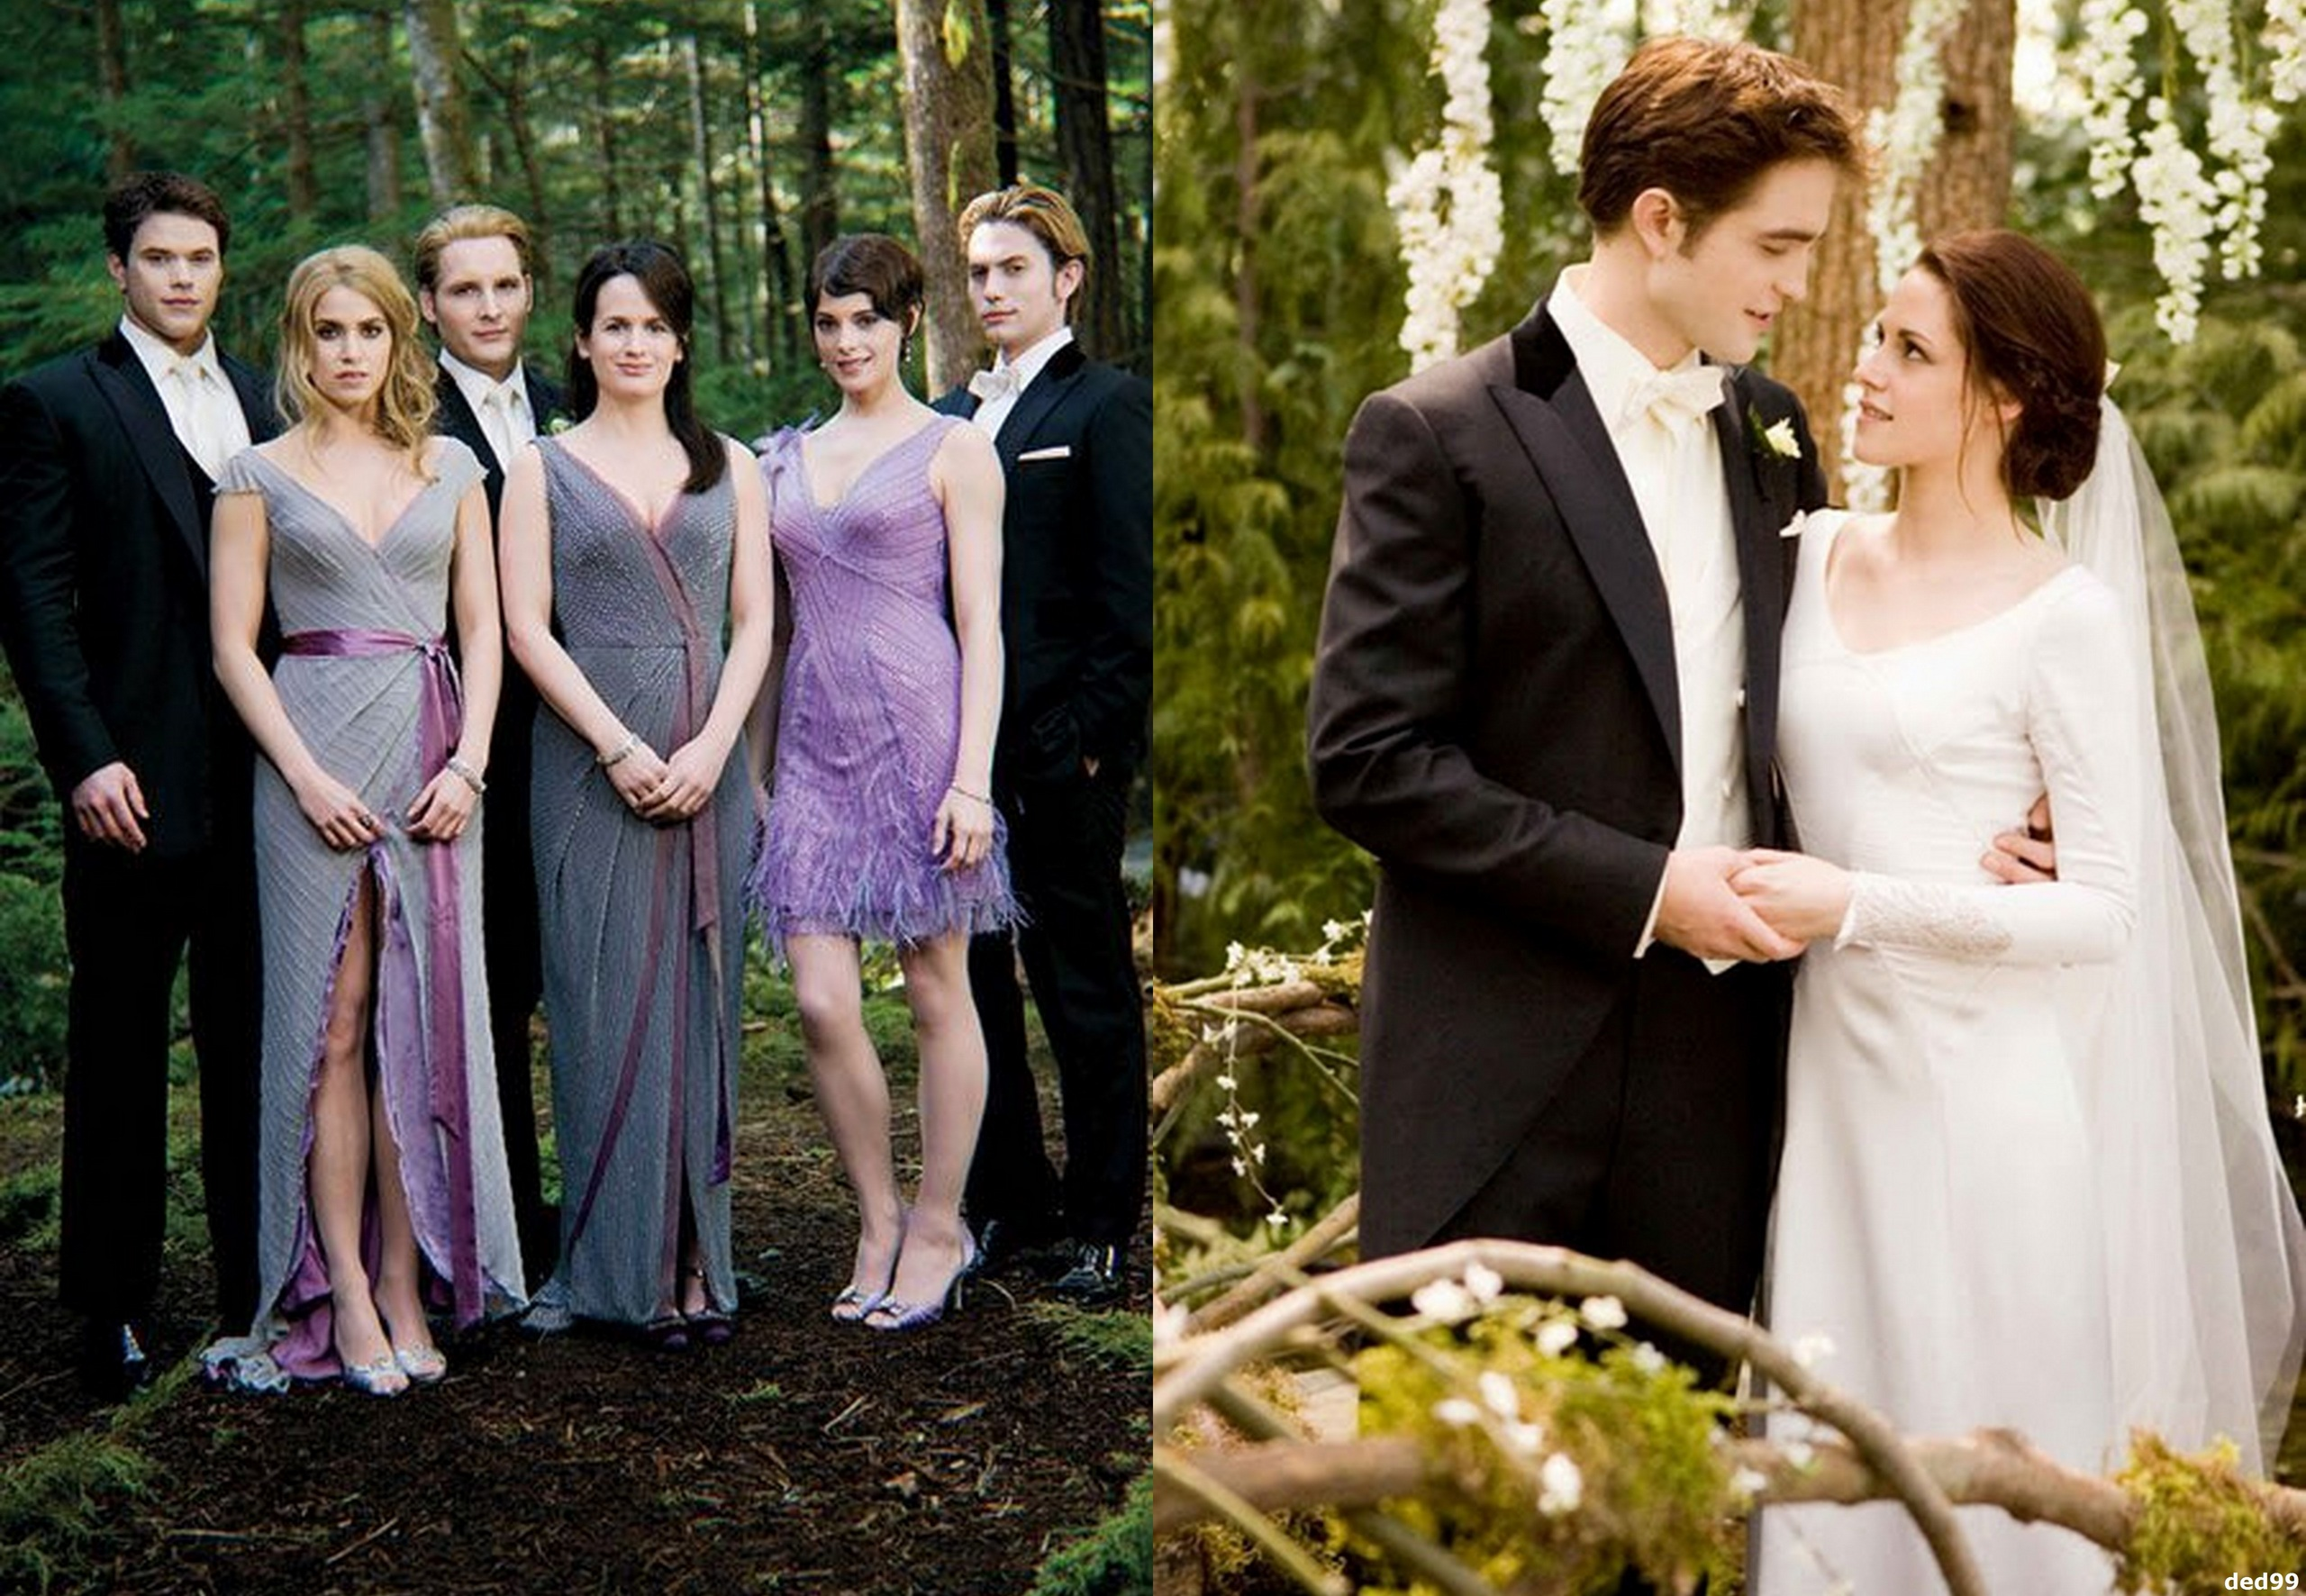 https://vignette.wikia.nocookie.net/twilightsaga/images/4/47/Cullens-Breaking-Dawn-Part1-the-cullens-32777216-2560-1772.jpg/revision/latest?cb=20140312211113